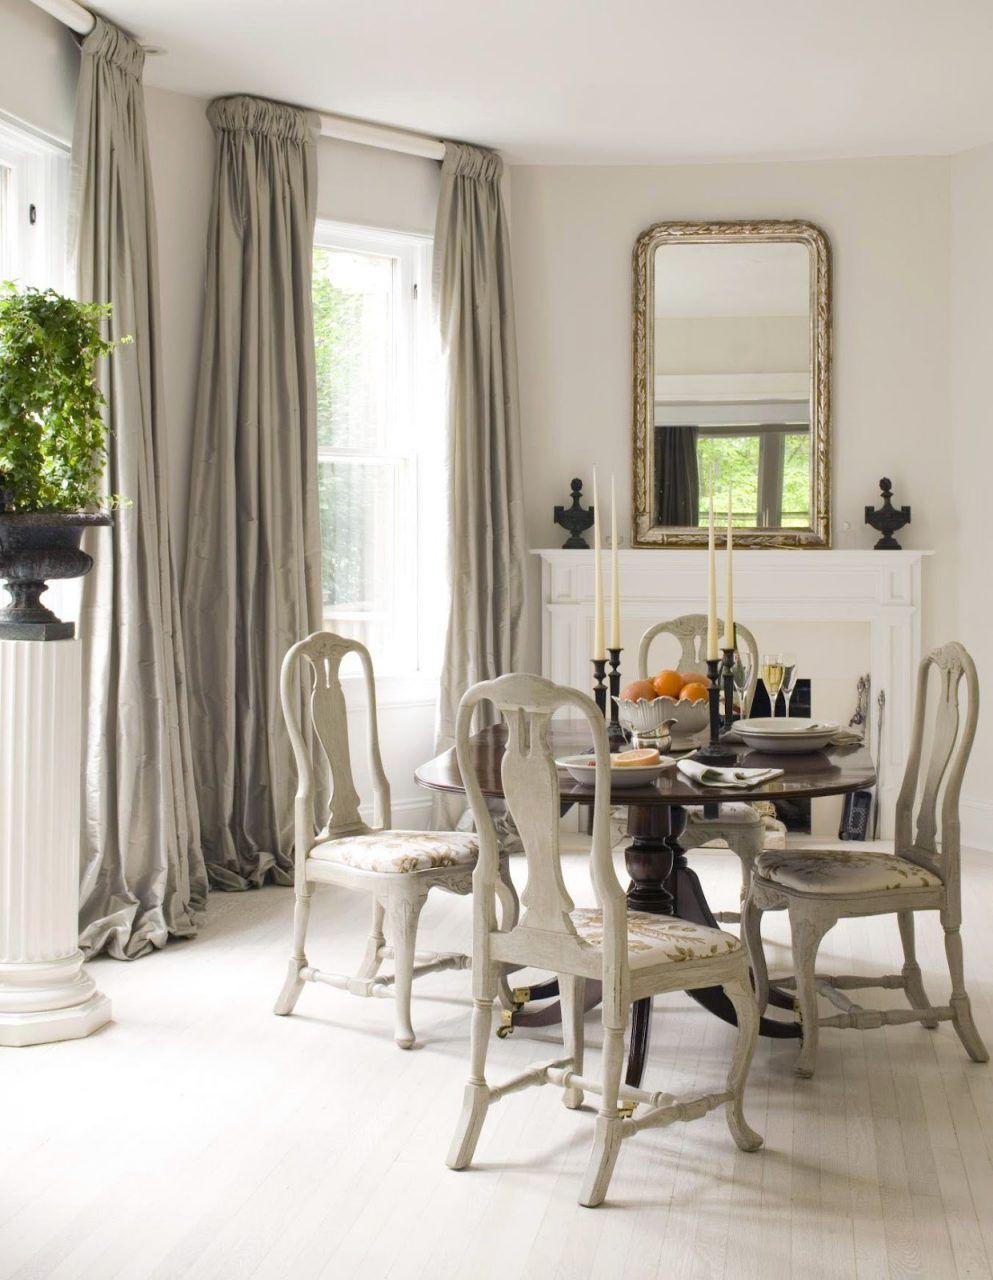 Dining Room Dining Room Curtain Designs Dining Room Curtains Bed